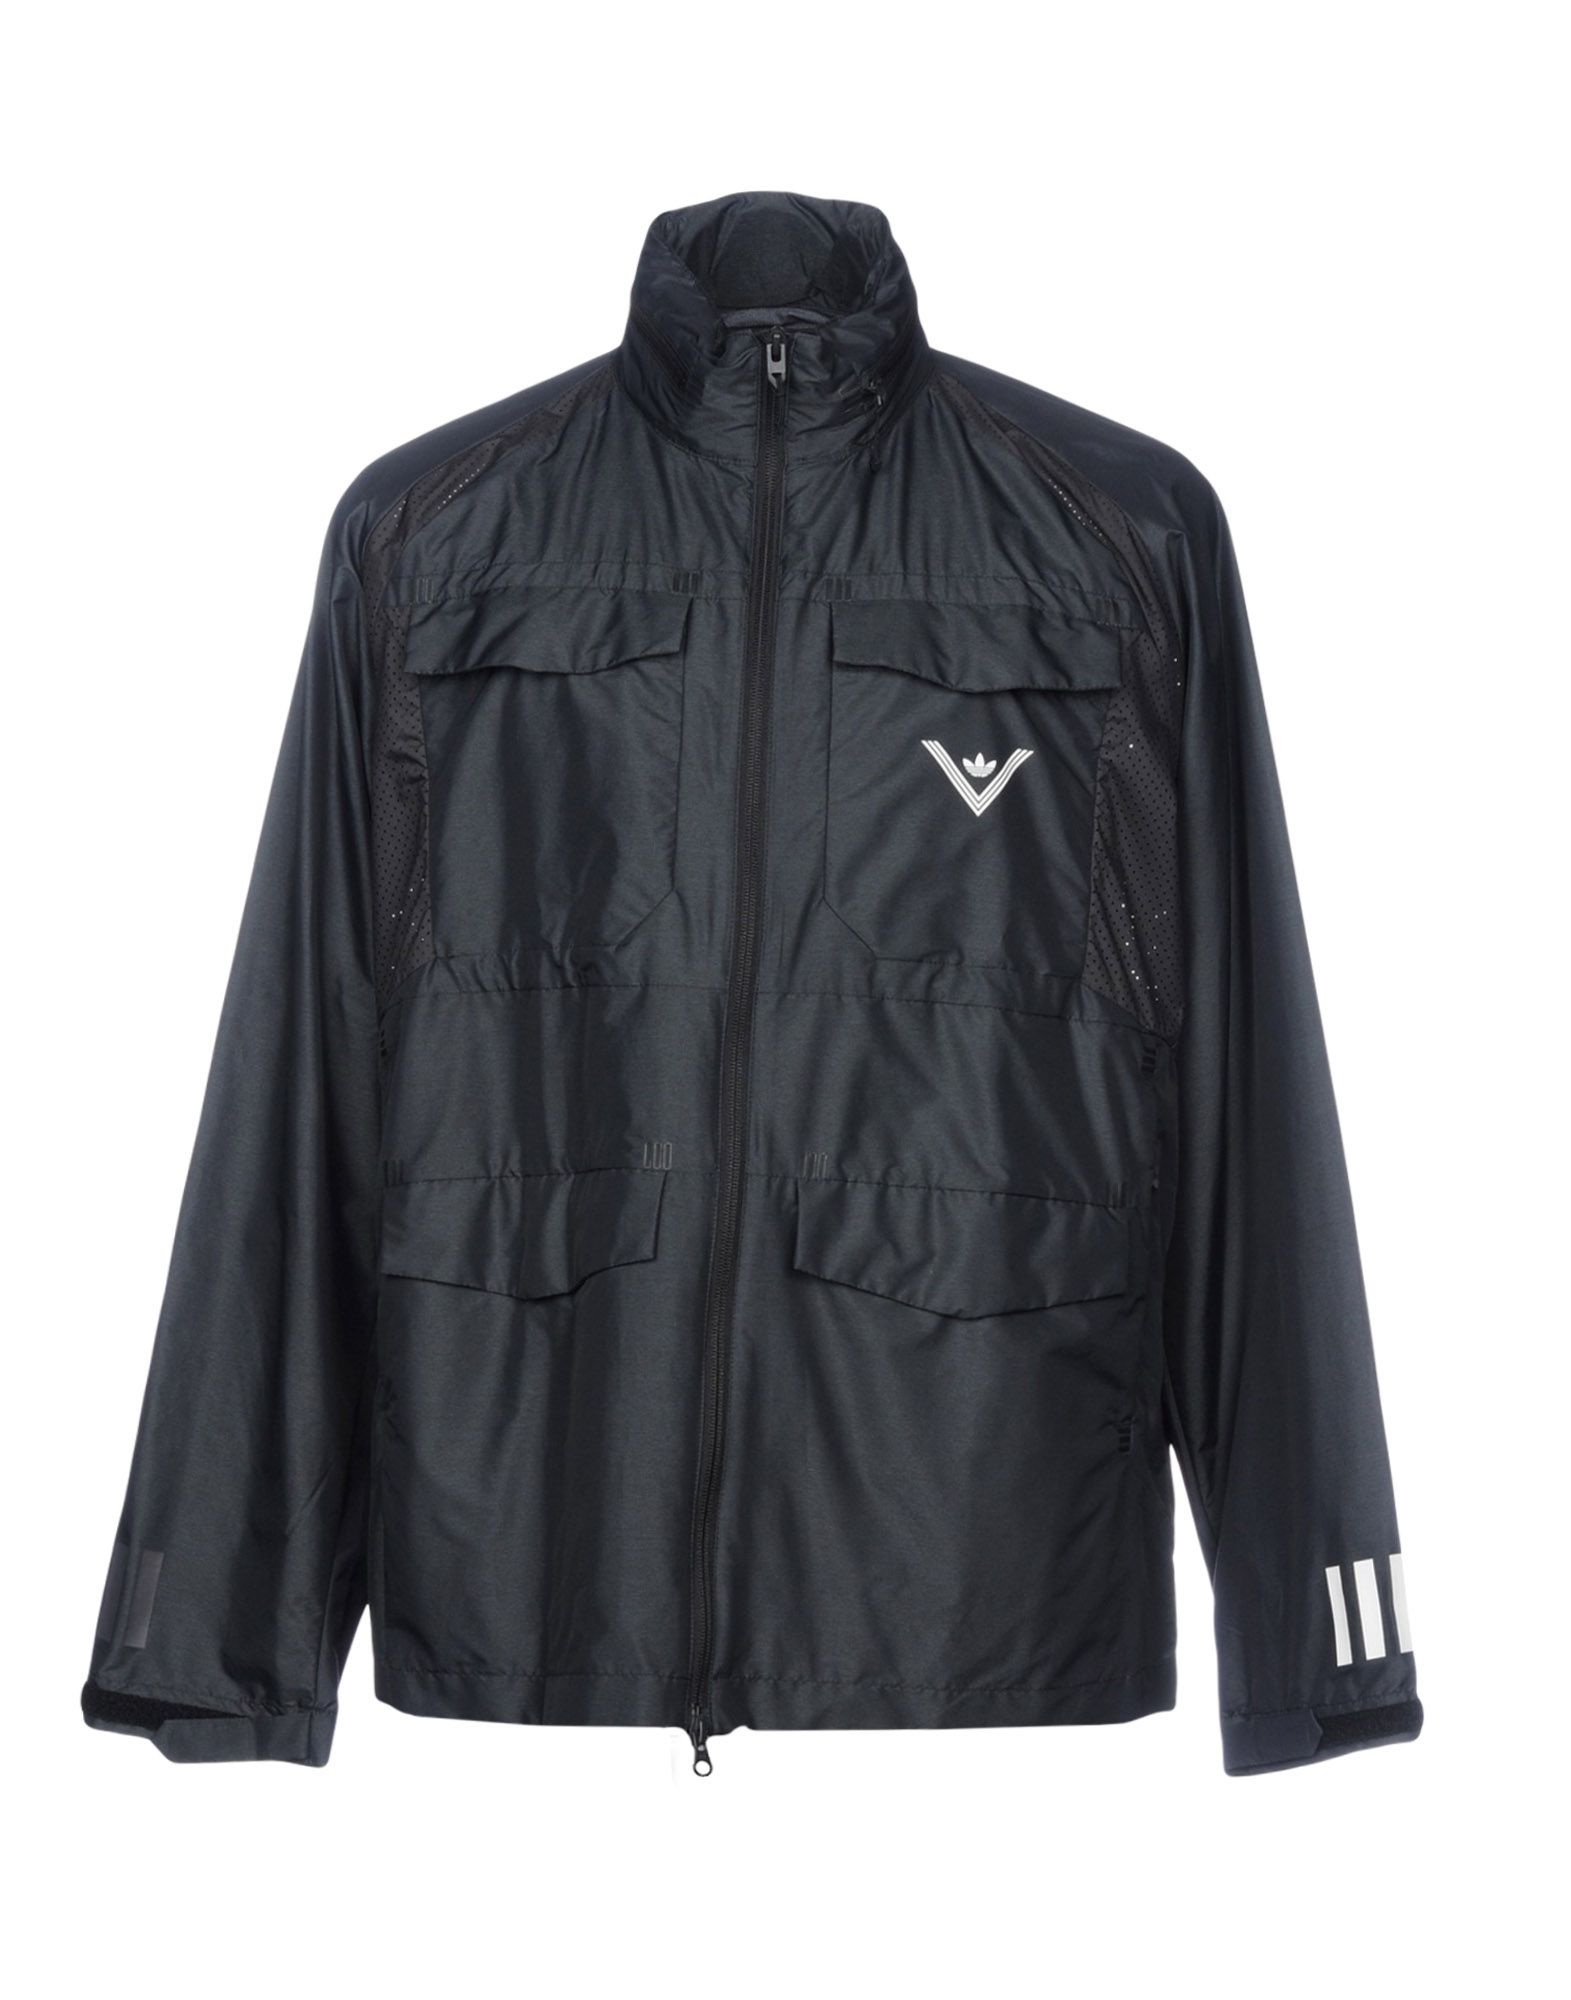 ADIDAS X WHITE MOUNTAINEERING Jacket in Black